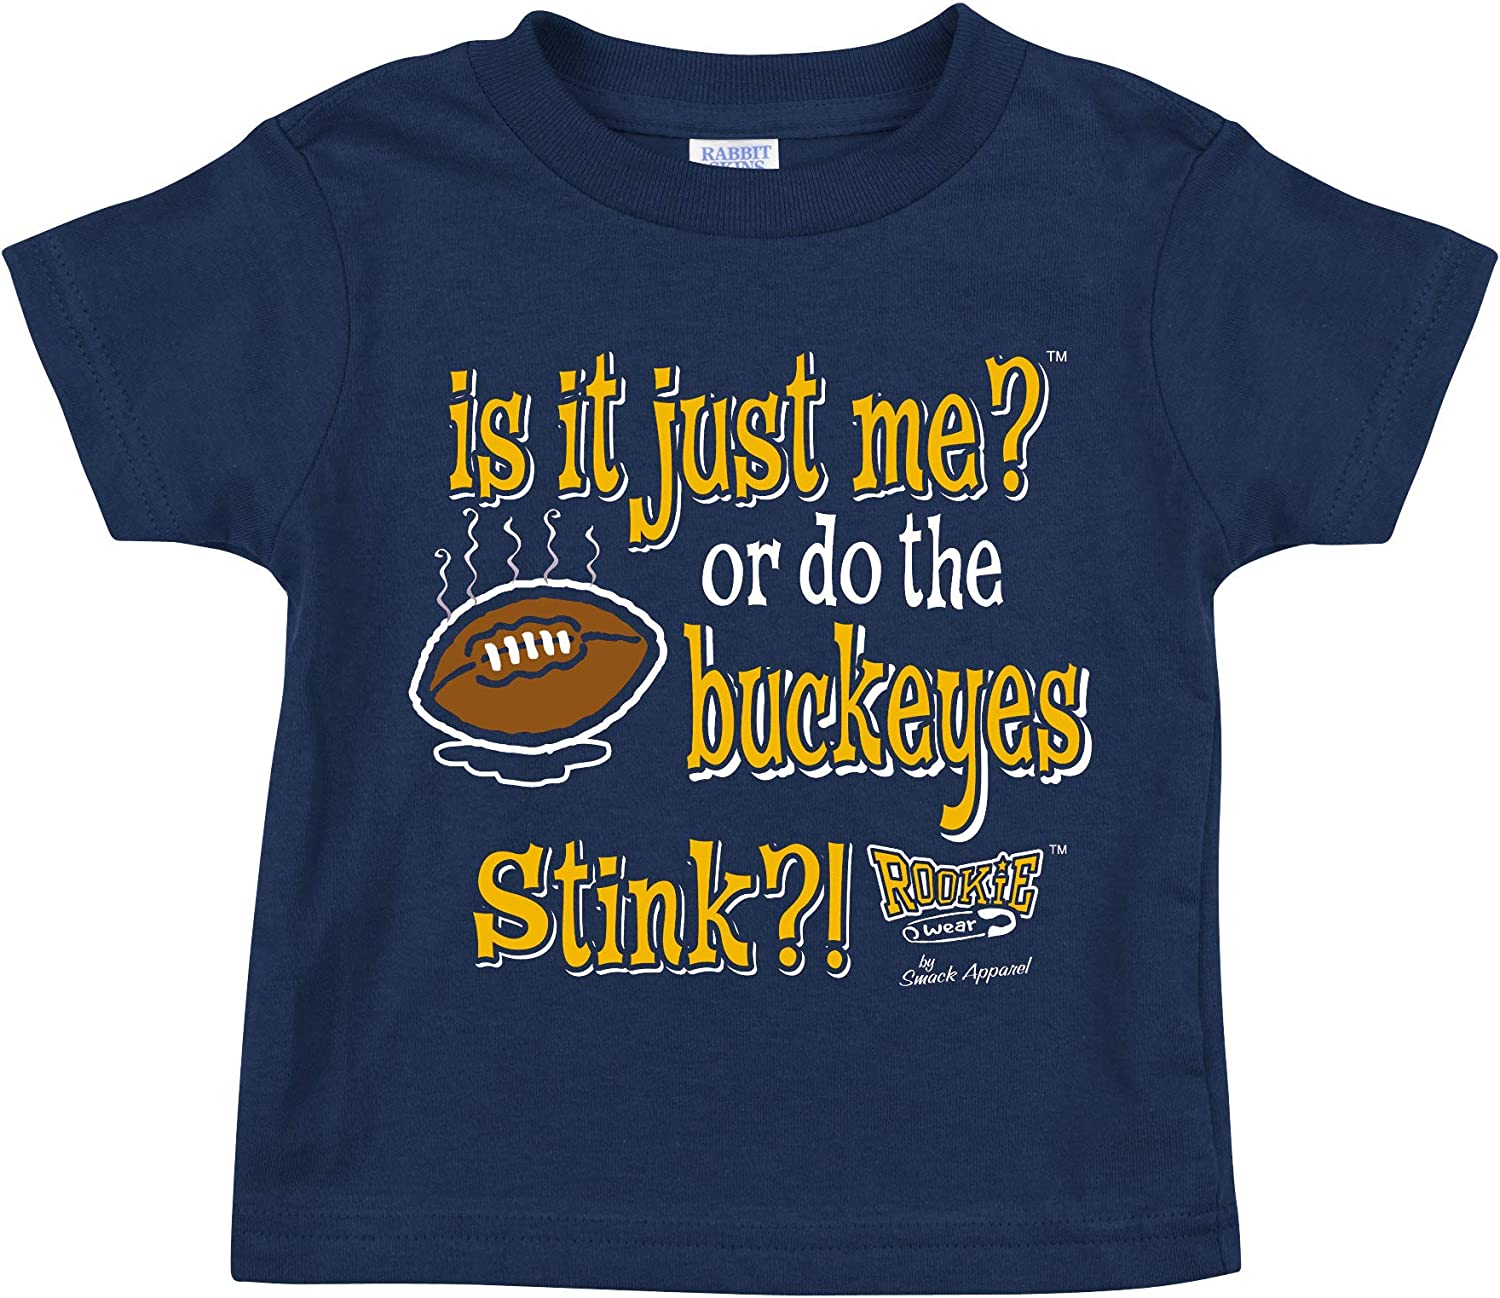 is It Just Me!? Navy Onesie Smack Apparel Michigan Football Fans or Toddler Tee 2T-4T NB-18M